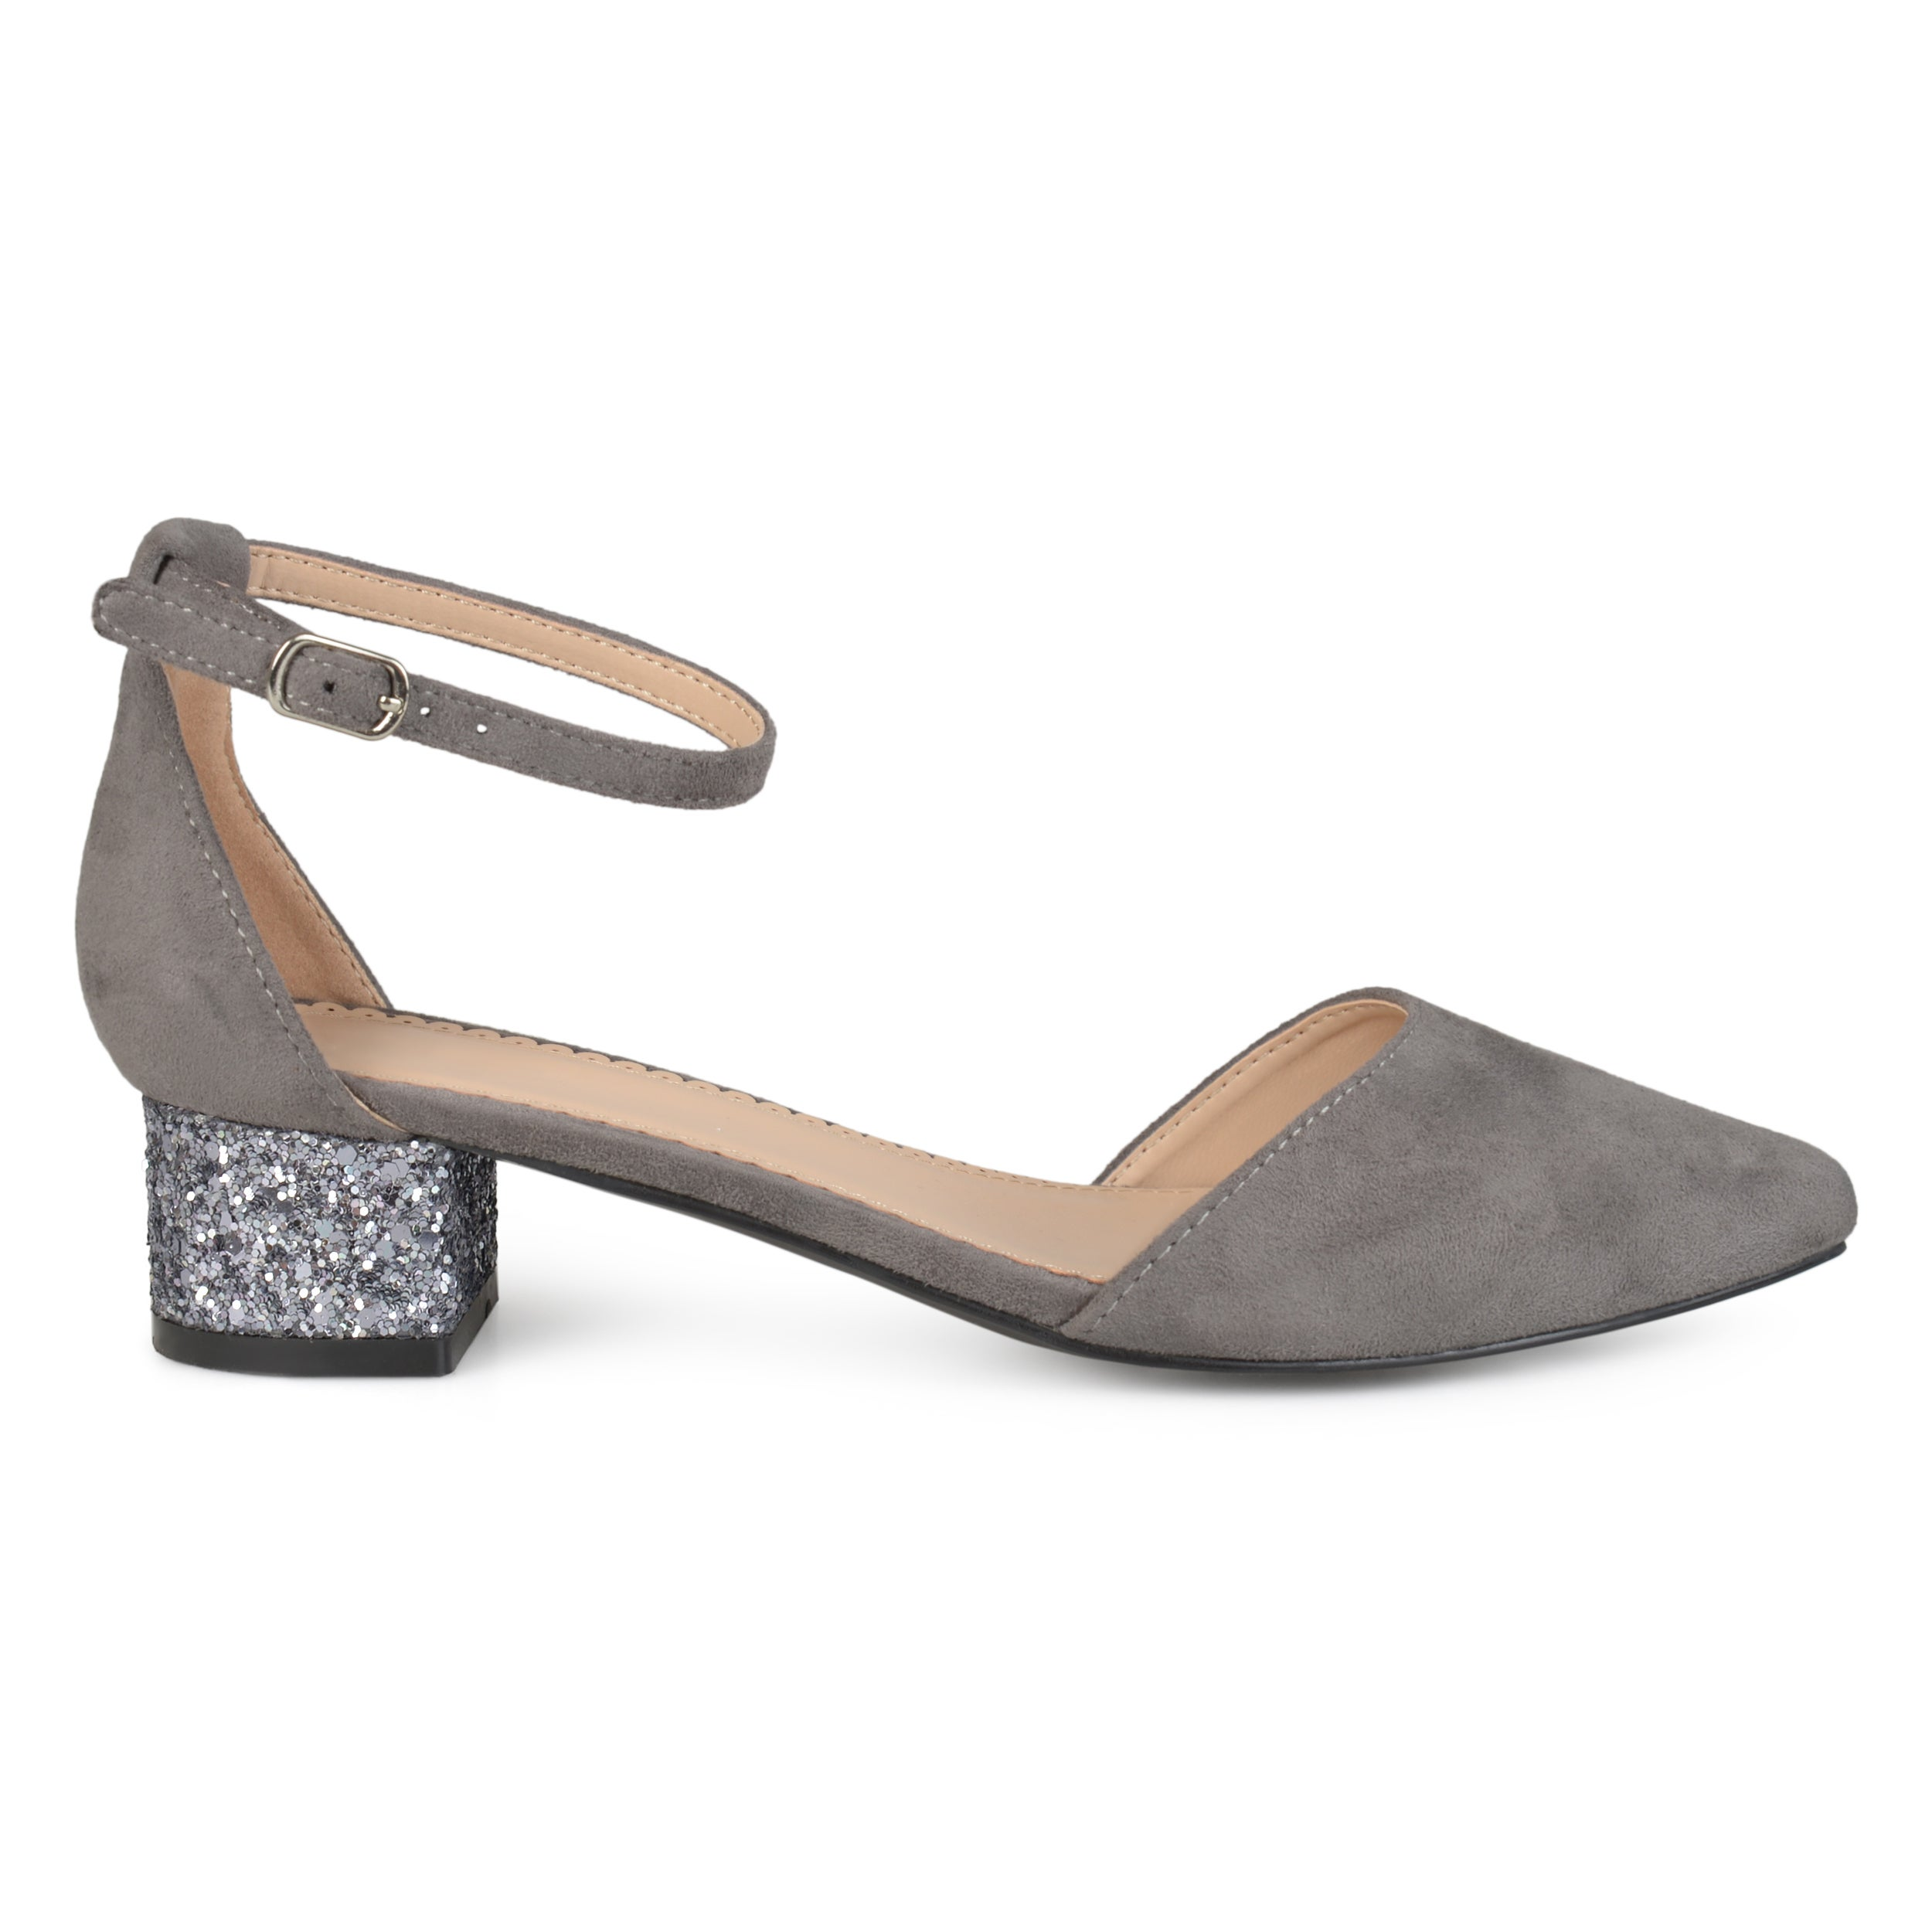 0c0745b11993 Shop Journee Collection Women's 'Maisy' Pointed Toe Ankle Strap Glitter  Heels - Free Shipping On Orders Over $45 - Overstock - 16413230